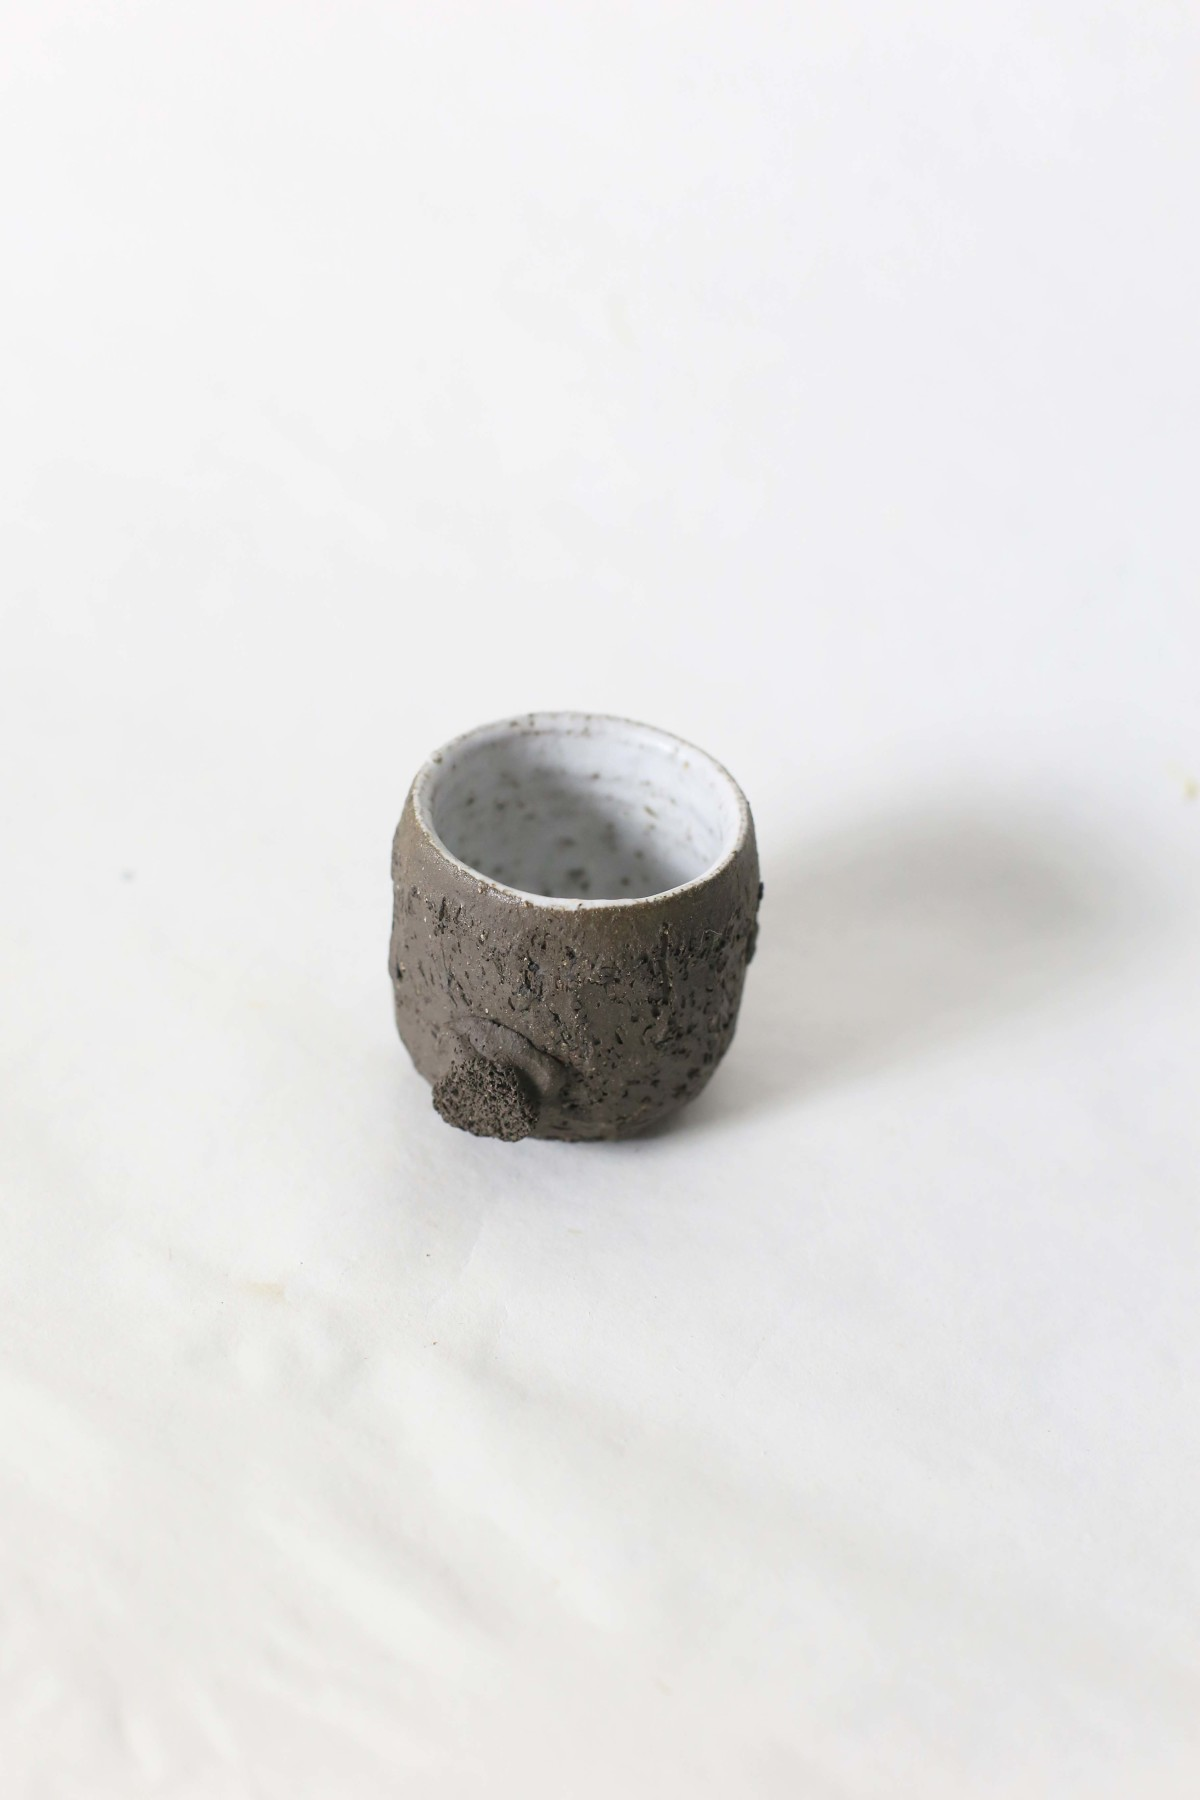 small brown ceramic cup with a bulge below on a white background over view